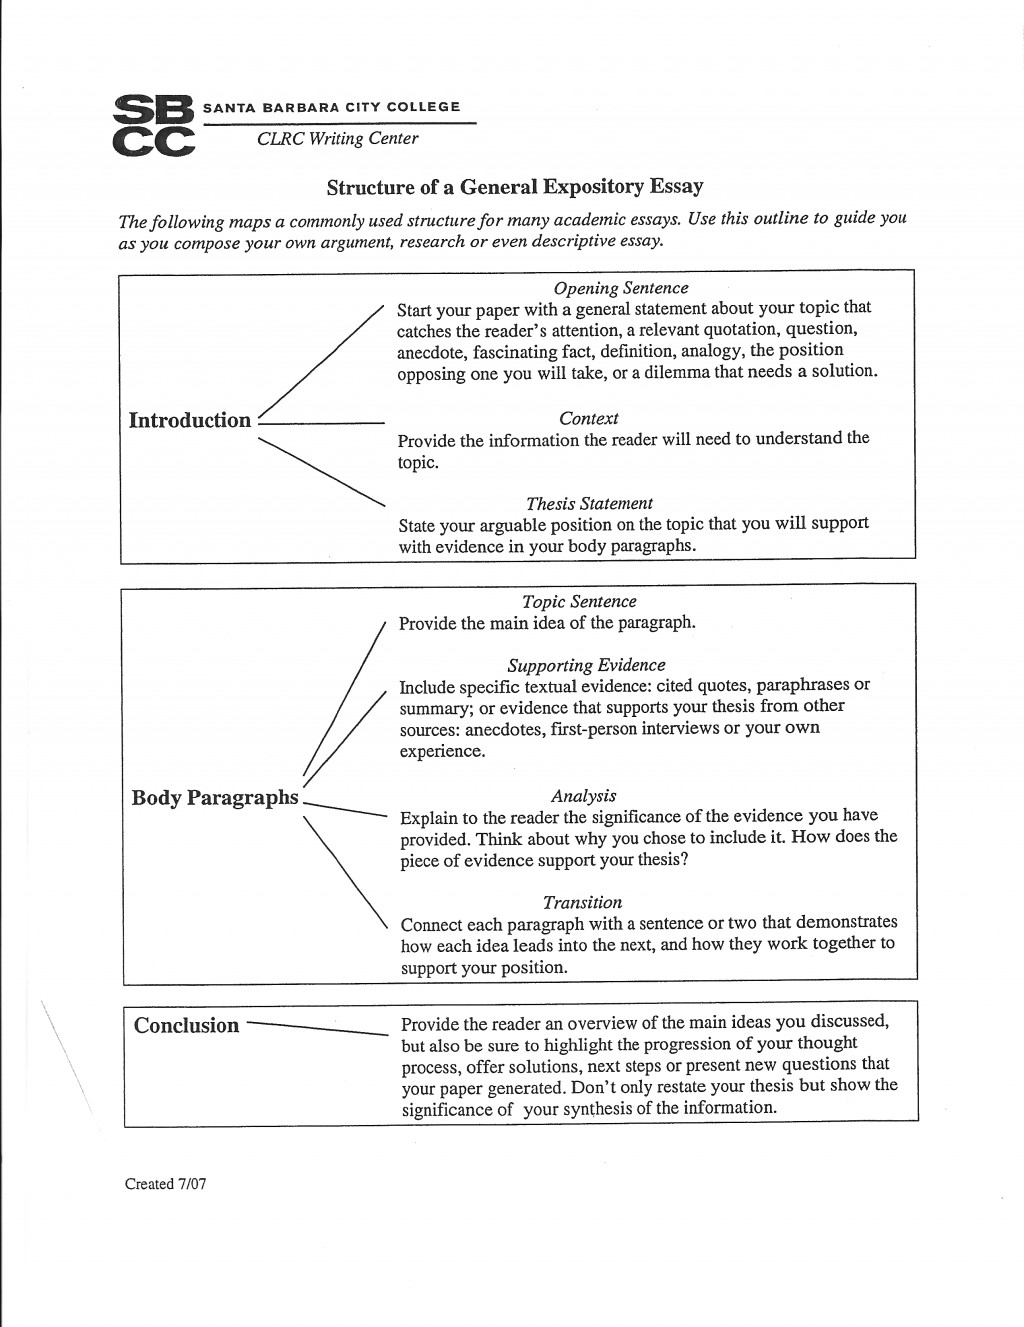 005 Informational Essays Essay Writing Examples For Kids Ideas About An Informative Making Sacrifices Br Quizlet Prewriting Activity Brainly Example How To Sensational Write 4th Grade Thesis Large